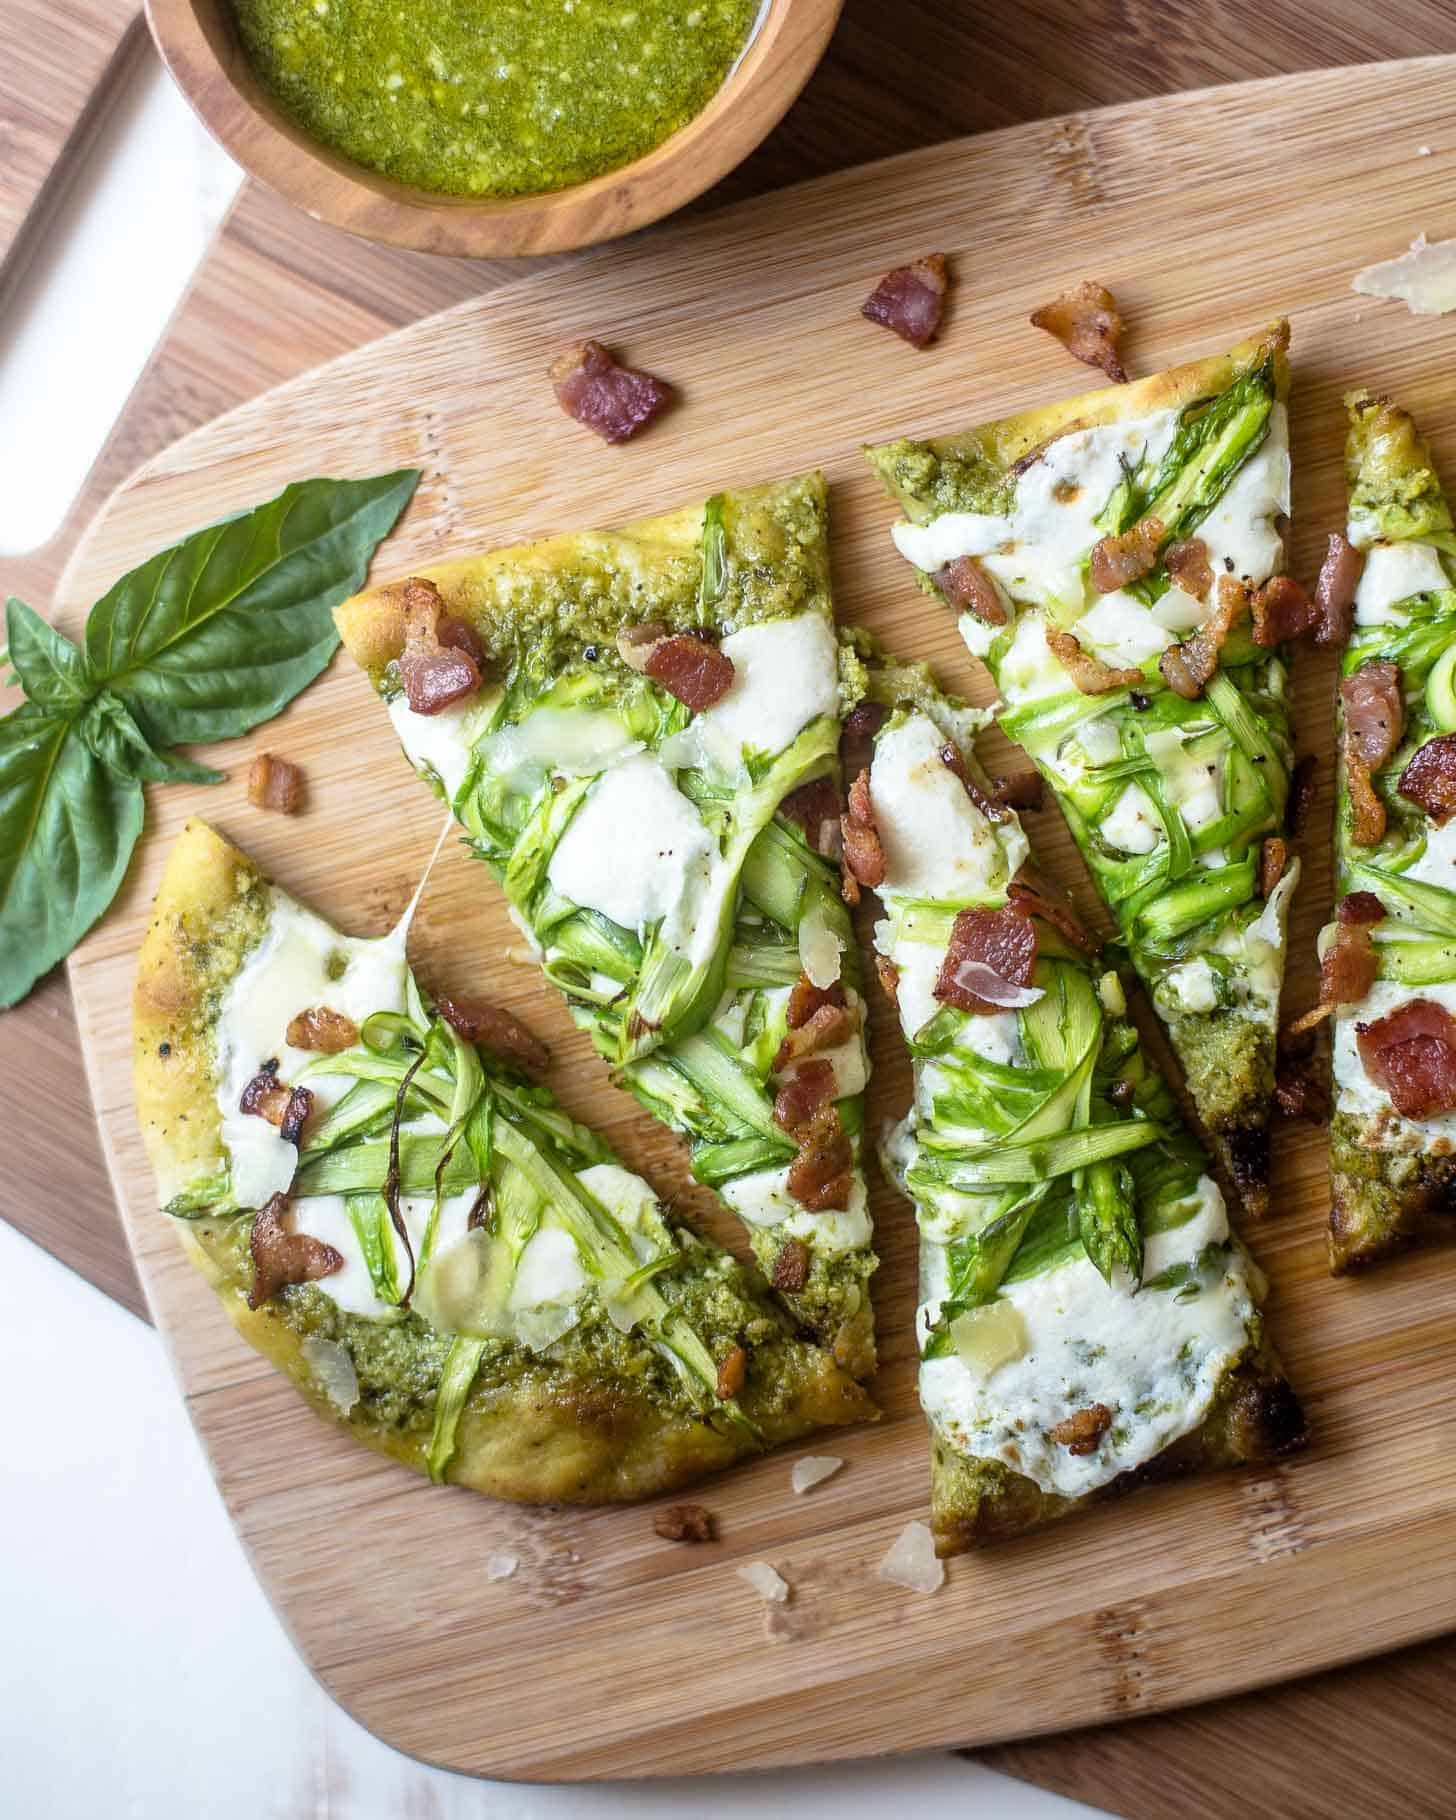 Pesto Flatbread with Shaved Asparagus and Bacon, sliced on a wooden cutting board